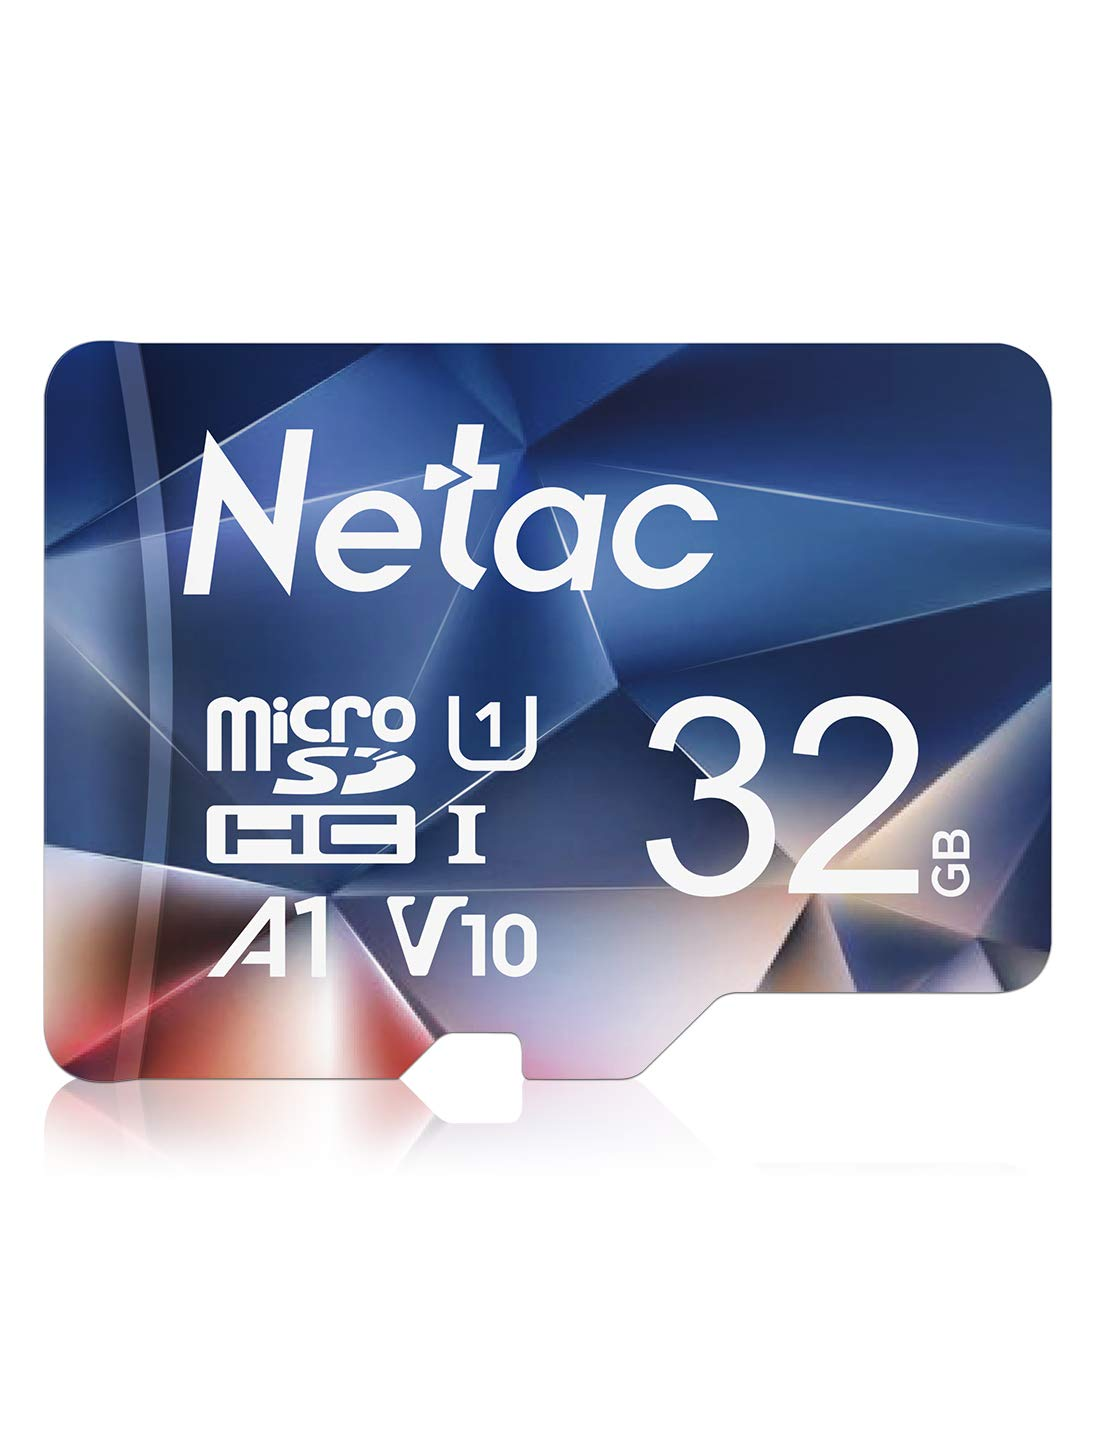 Netac 32GB Micro SD Memory Card, MicroSDHC Card UHS-I, 90/10MB/s(R/W), 600X, C10, U1, A1, V10, Full HD, TF Card for Camera, Smartphone, Security System, Drone, Dash Cam, Gopro, Tablet, DSLRs